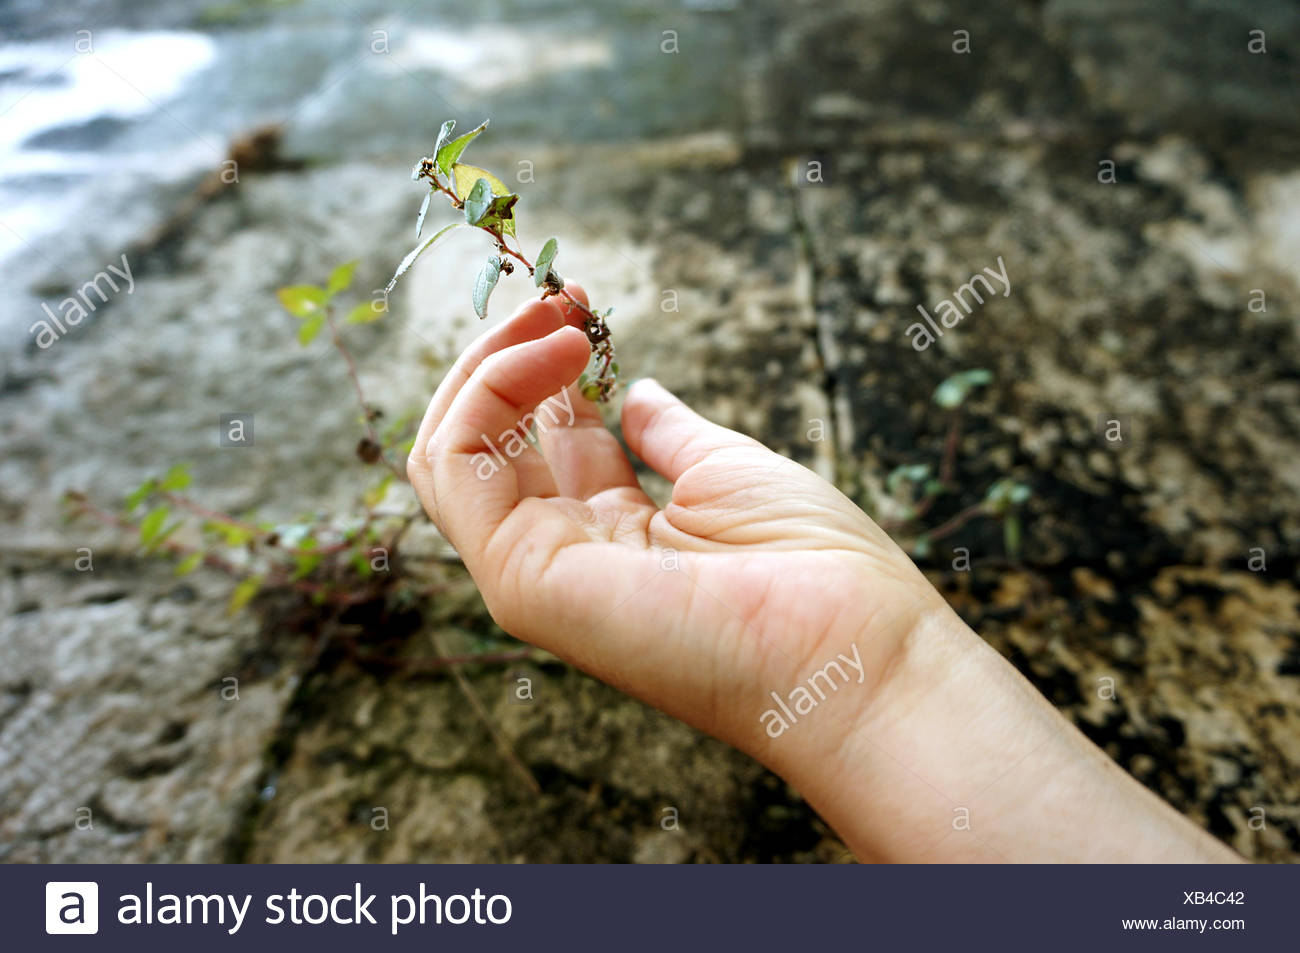 Cropped Image Of Person Holding Plant - Stock Image